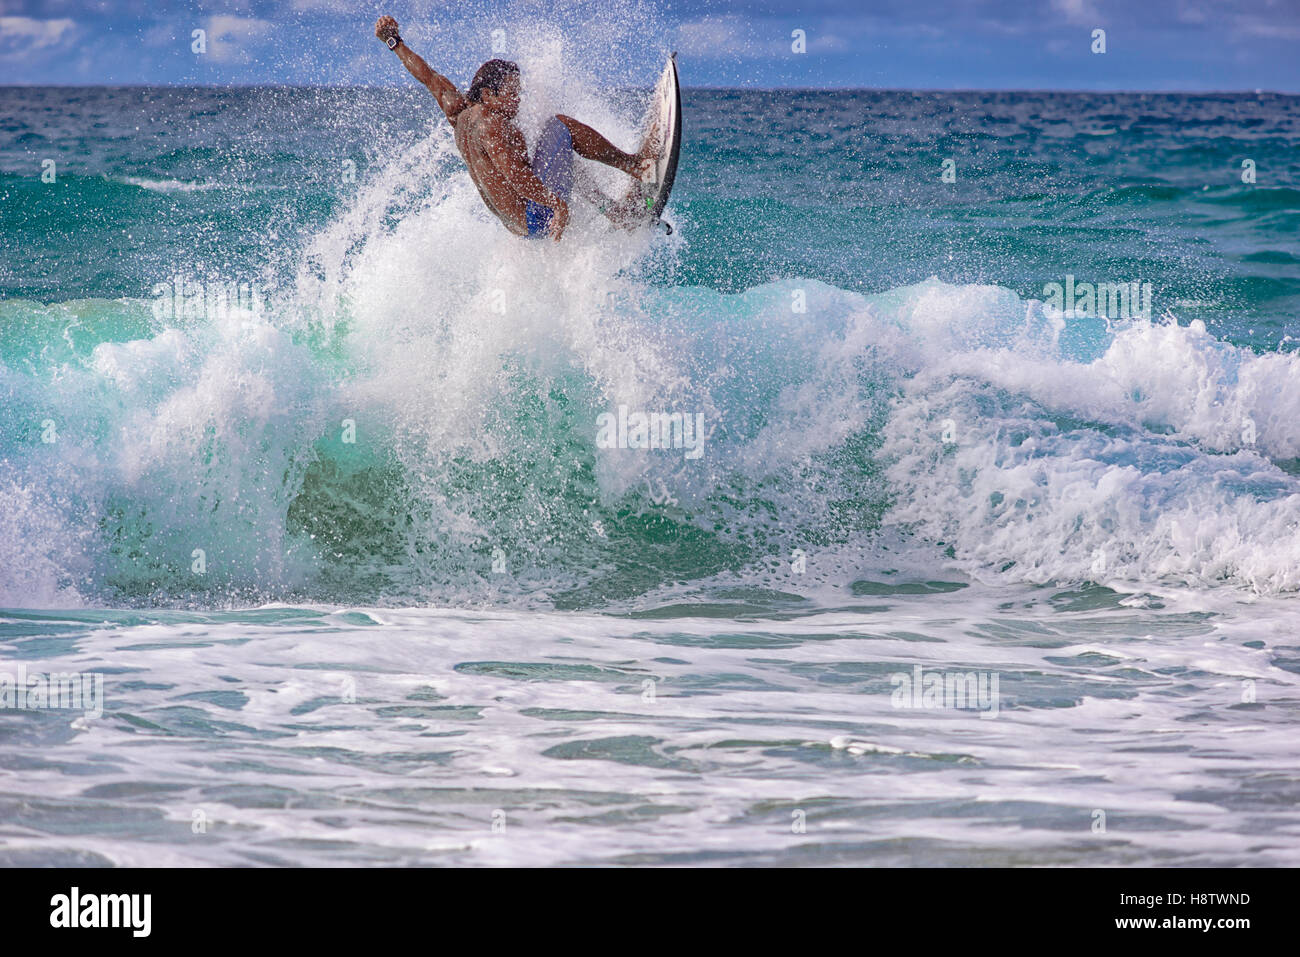 4e0309634bb1a1 Surfer at Banzai Pipeline